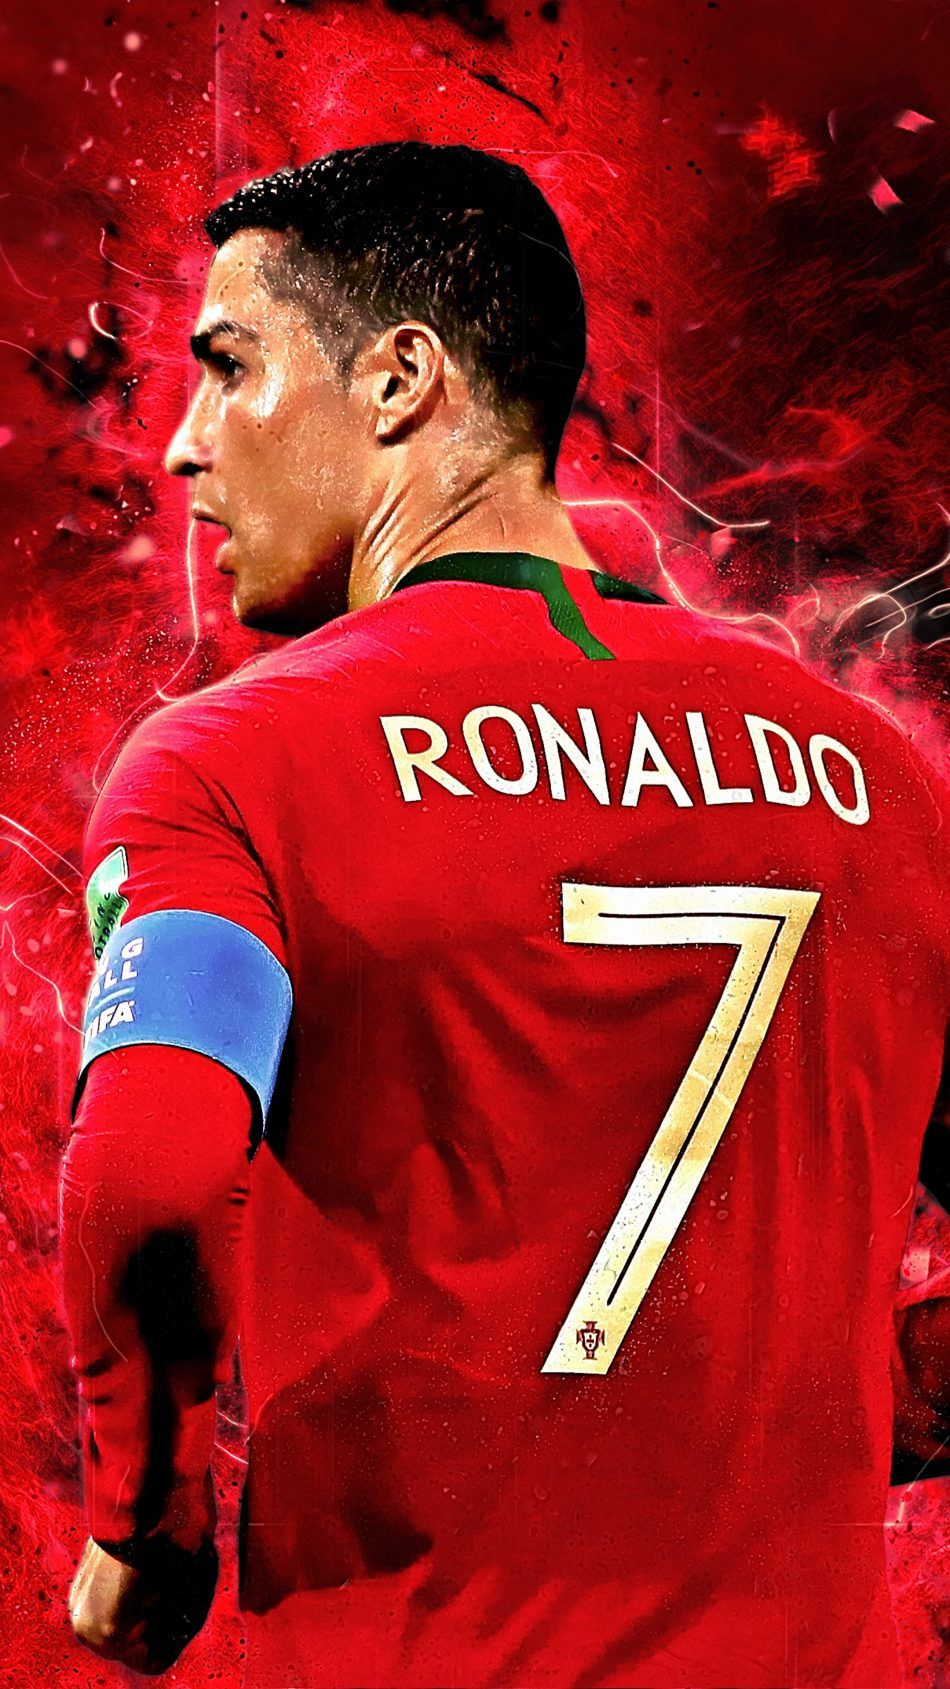 Cristiano ronaldo jersey number 7 sports wallpapers - C ronaldo wallpaper portugal ...